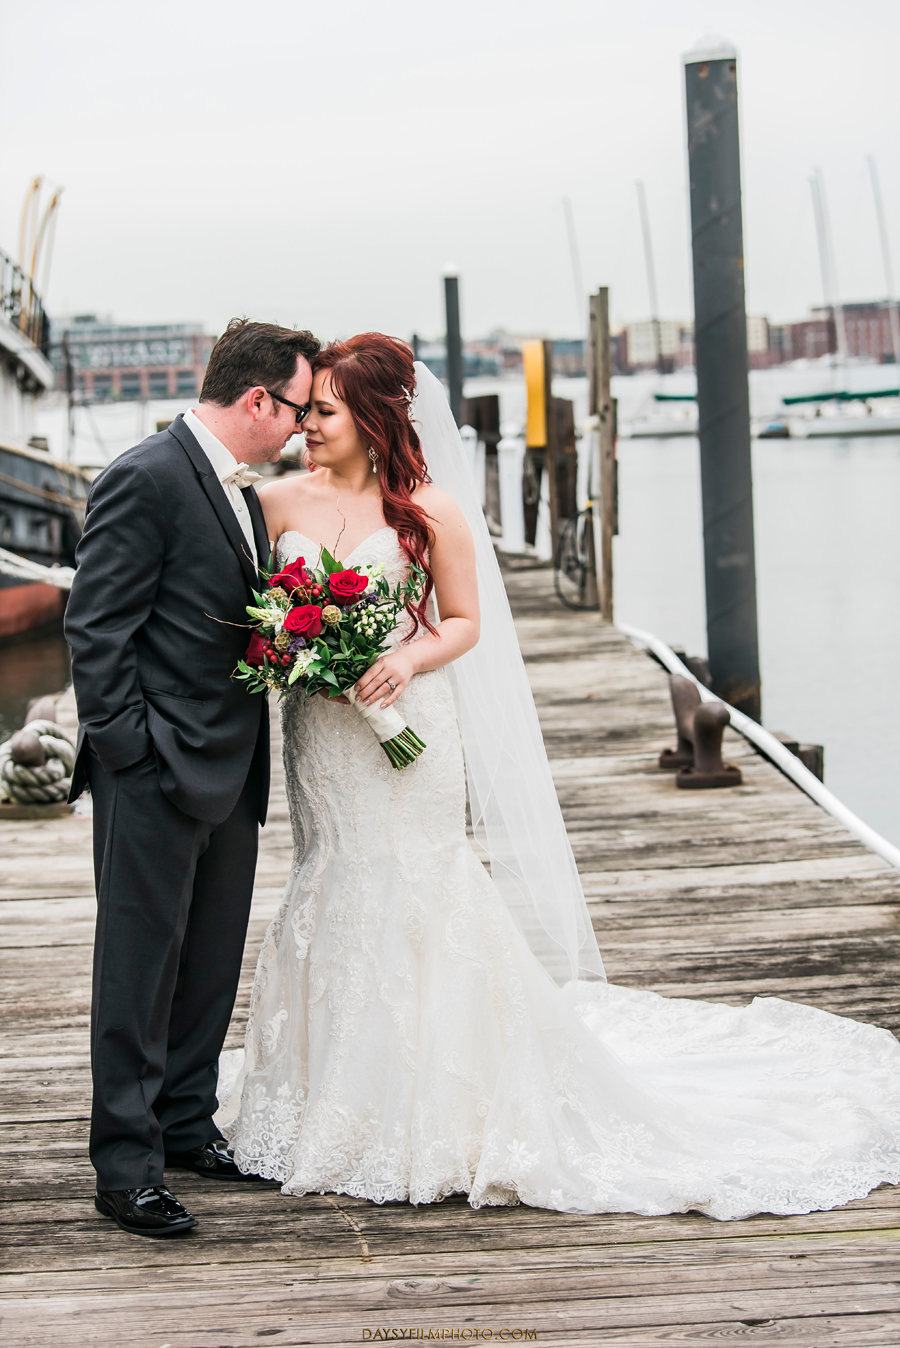 Baltimore Museum of Industry Wedding bride and groom at the dock